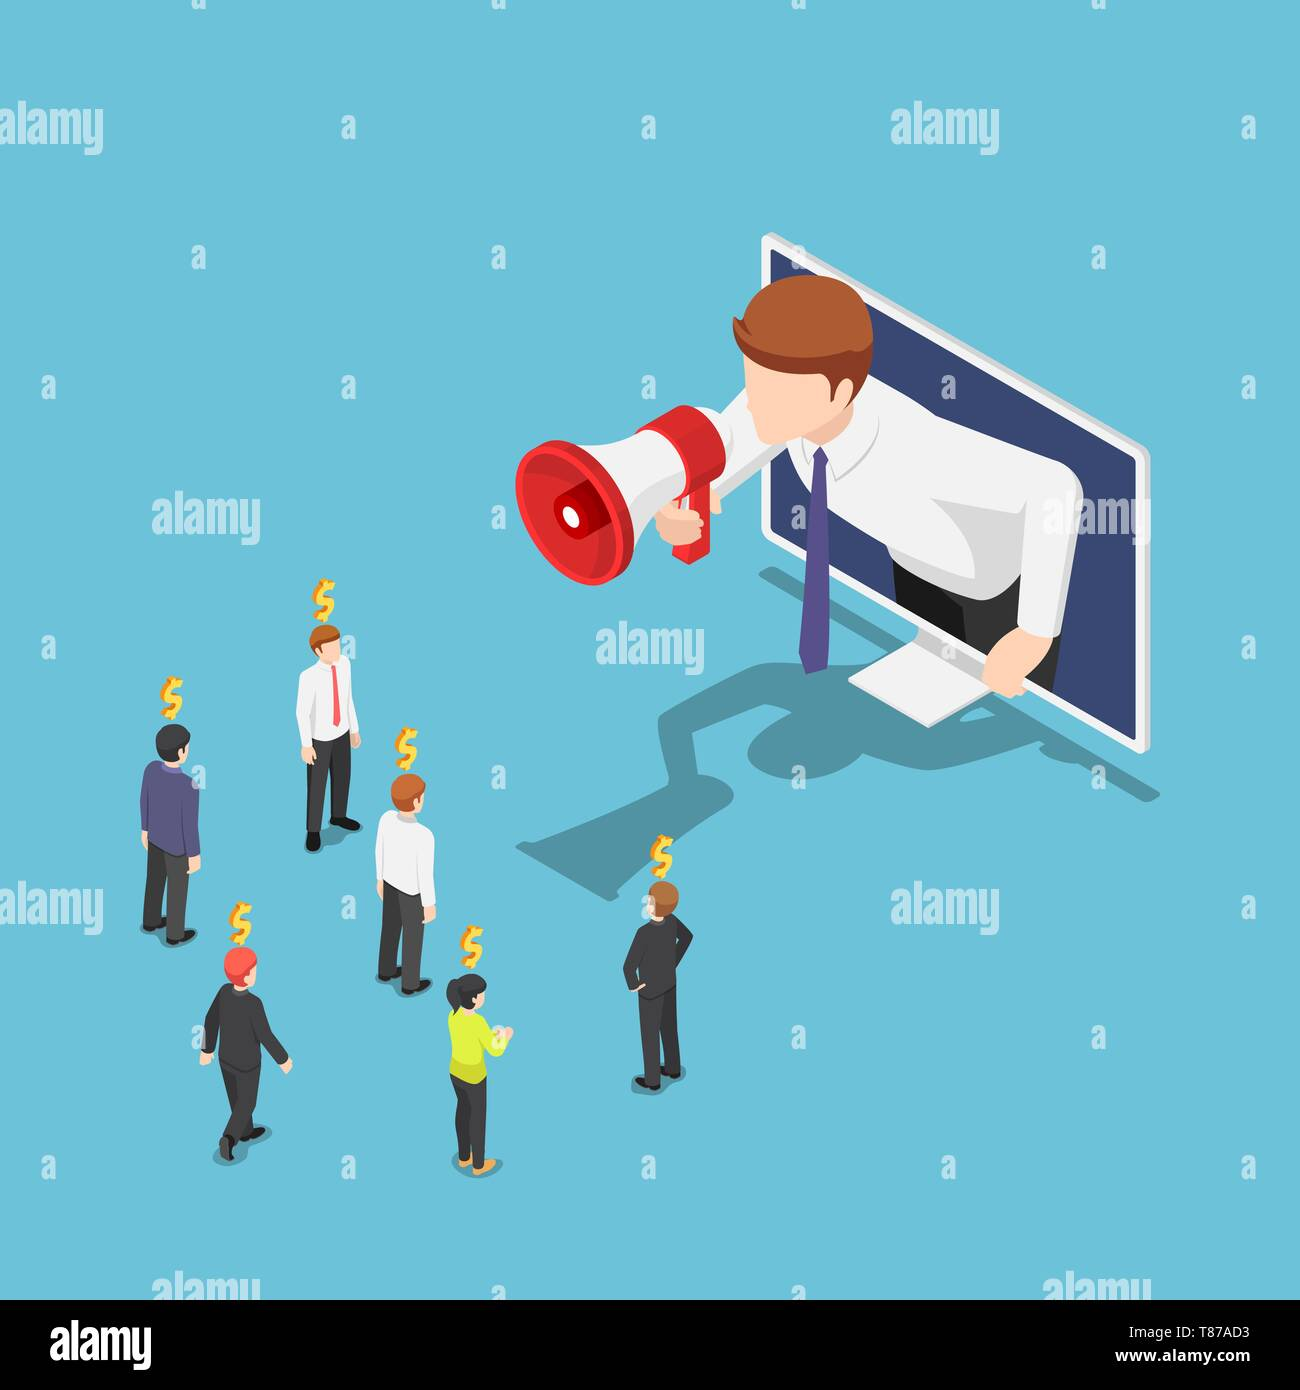 Flat 3d isometric businessman come out from monitor and shout on megaphone to refer a friend. Referral marketing and Digital business advertising. - Stock Image